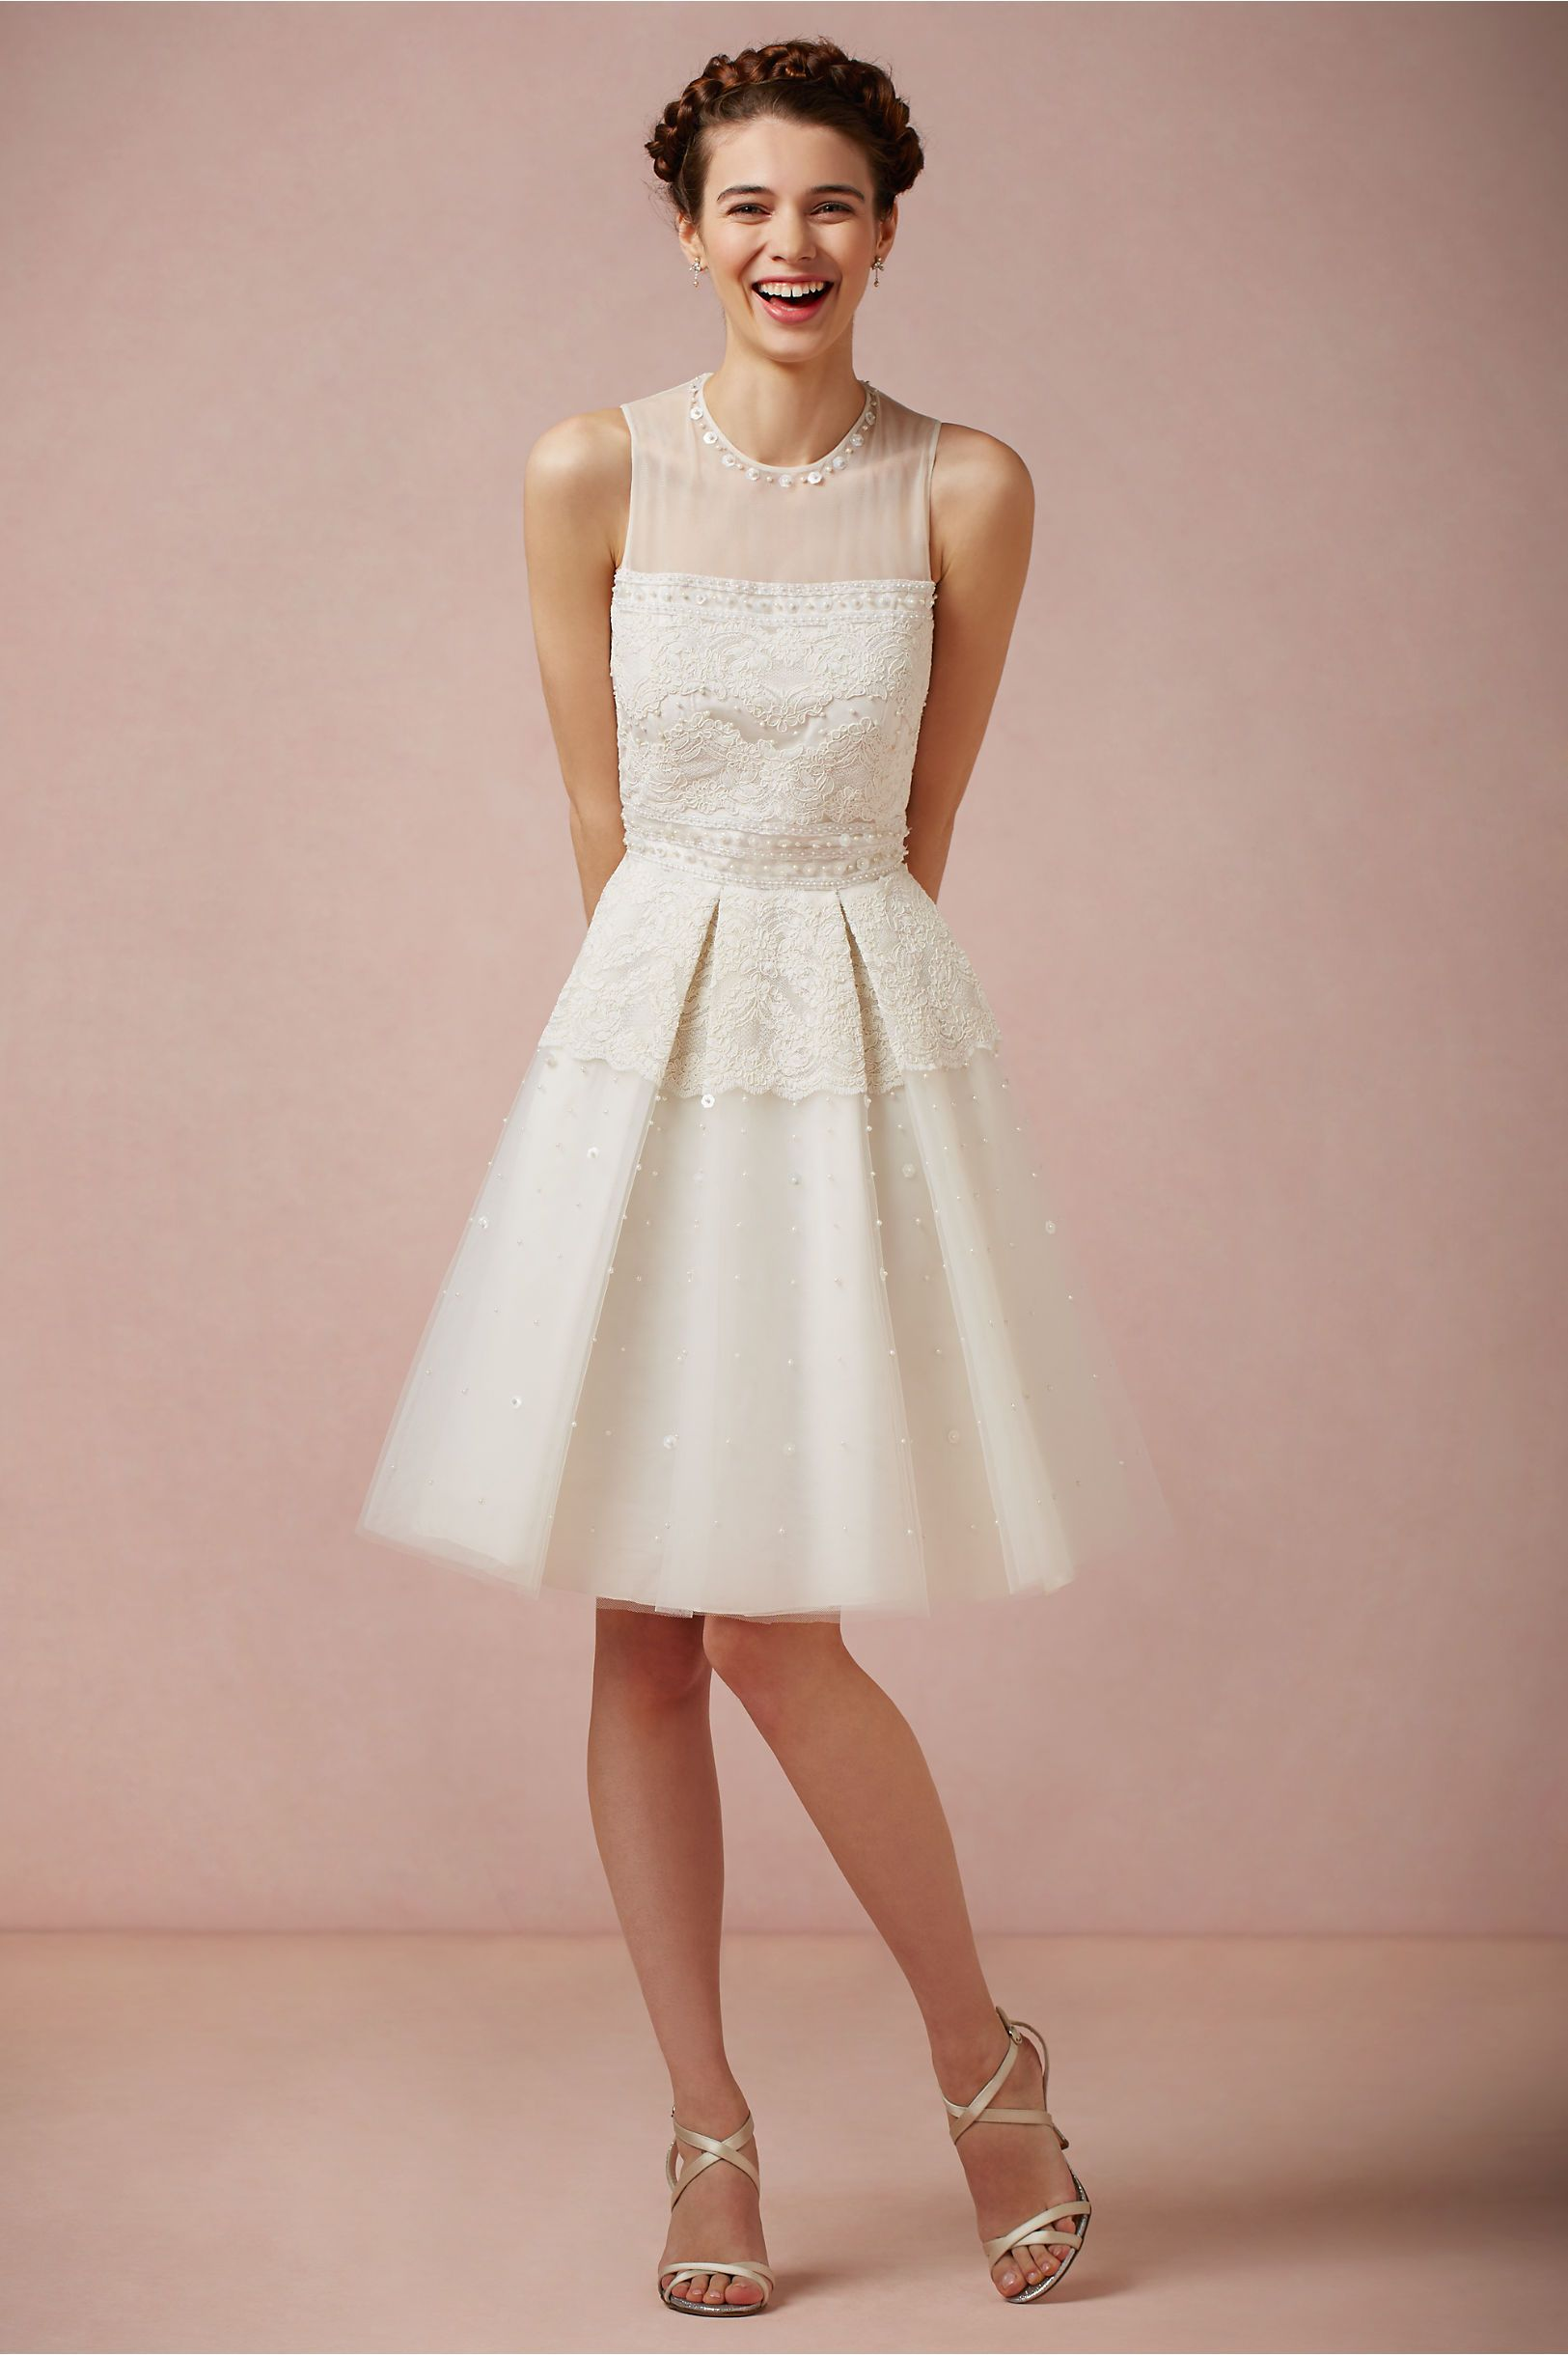 Pinpearl Dress in New at BHLDN | Future Wedding | Pinterest ...